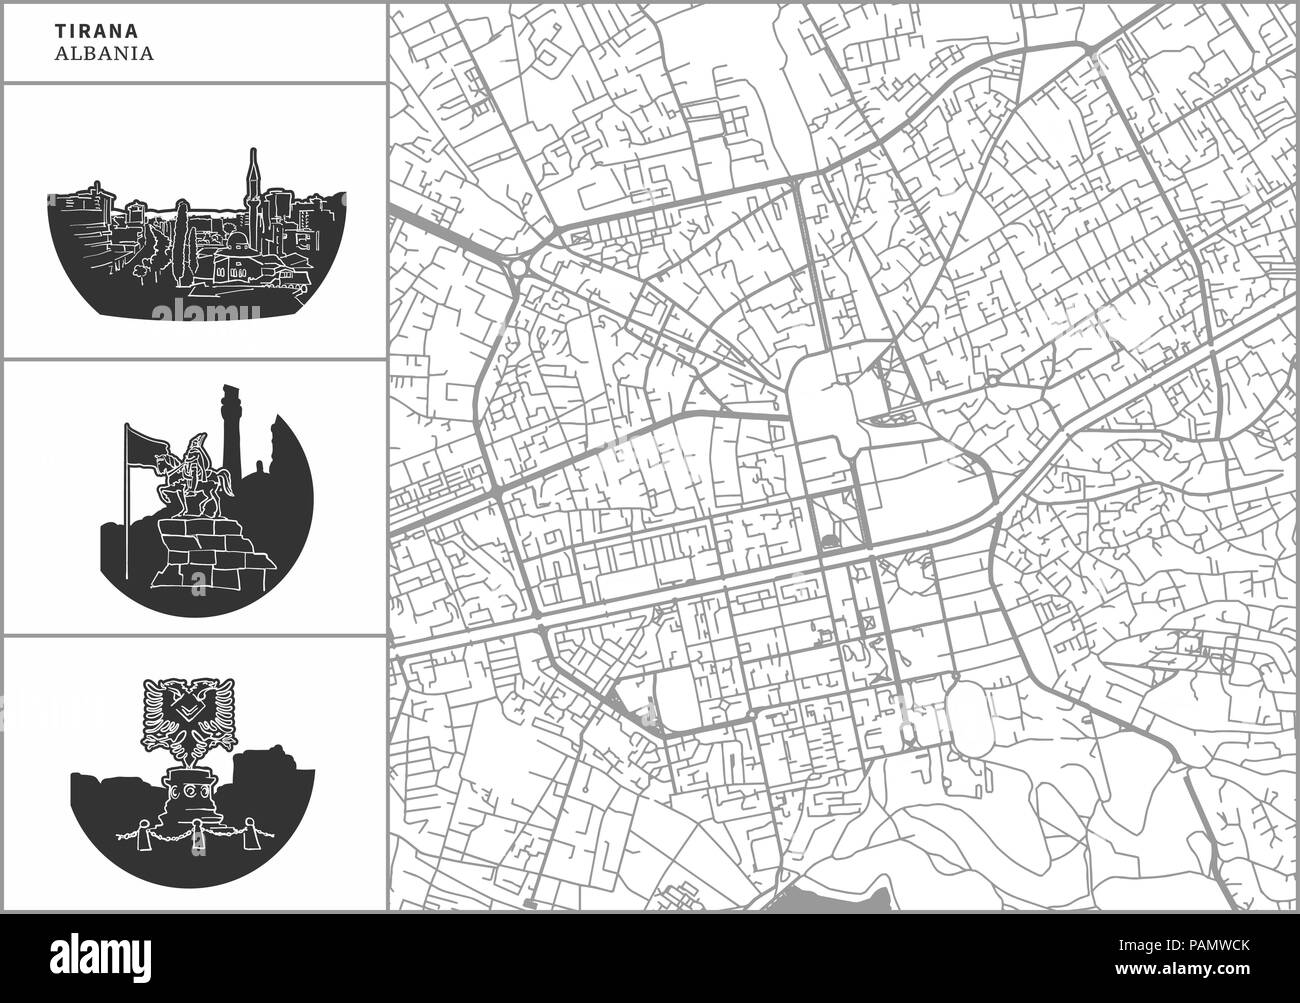 Tirana city map with hand-drawn architecture icons. All drawigns, map and background separated for easy color change. Easy repositioning in vector ver - Stock Vector